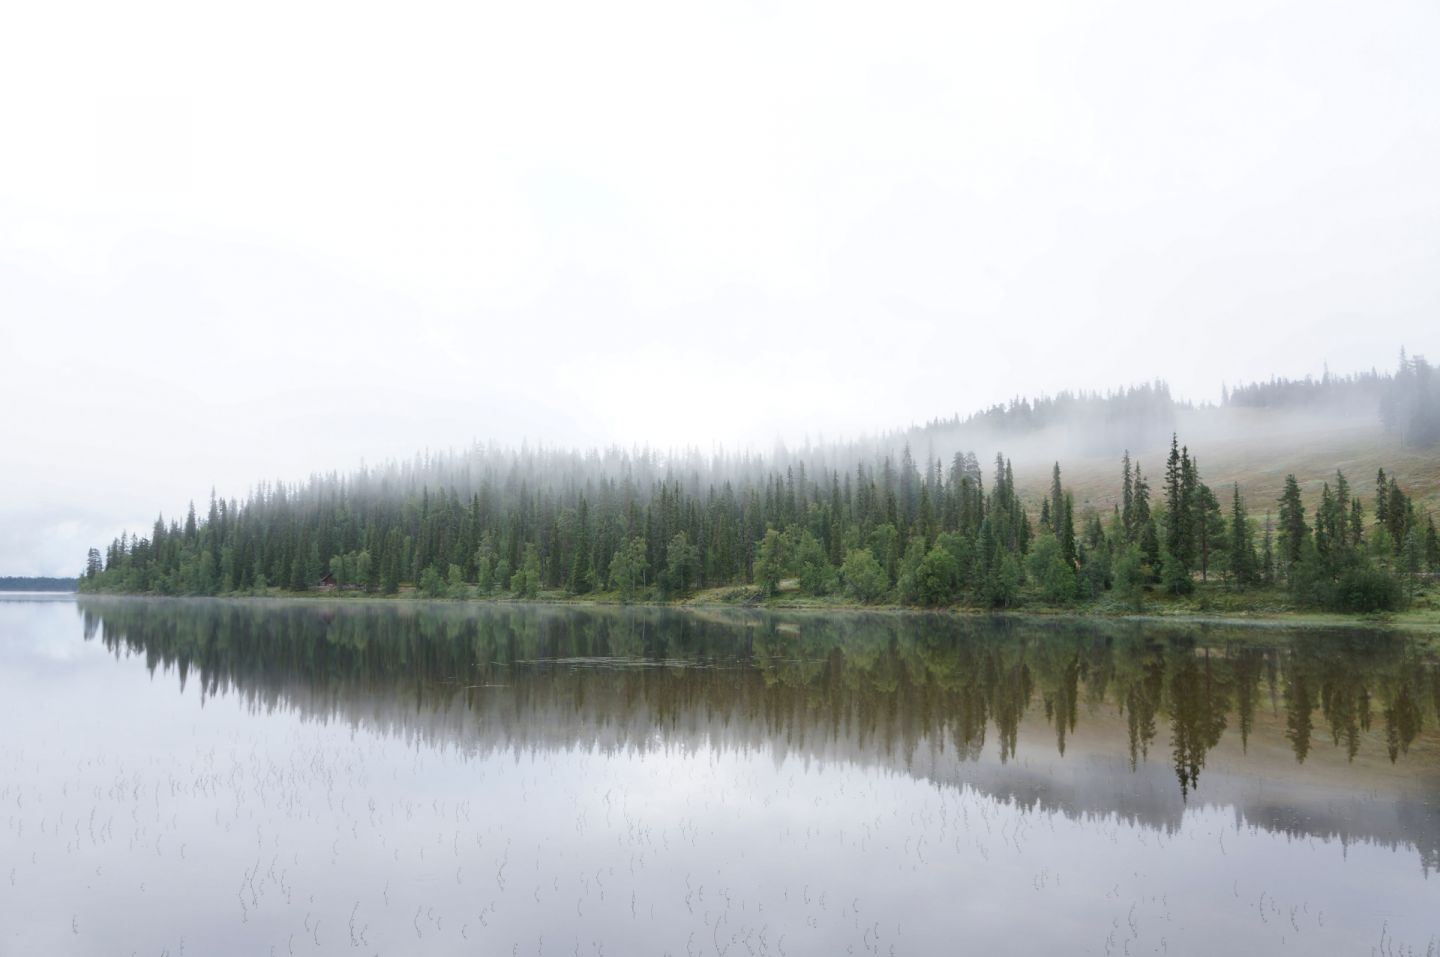 Mist rolls over the pines to the river in Lapland, Europe's last wilderness